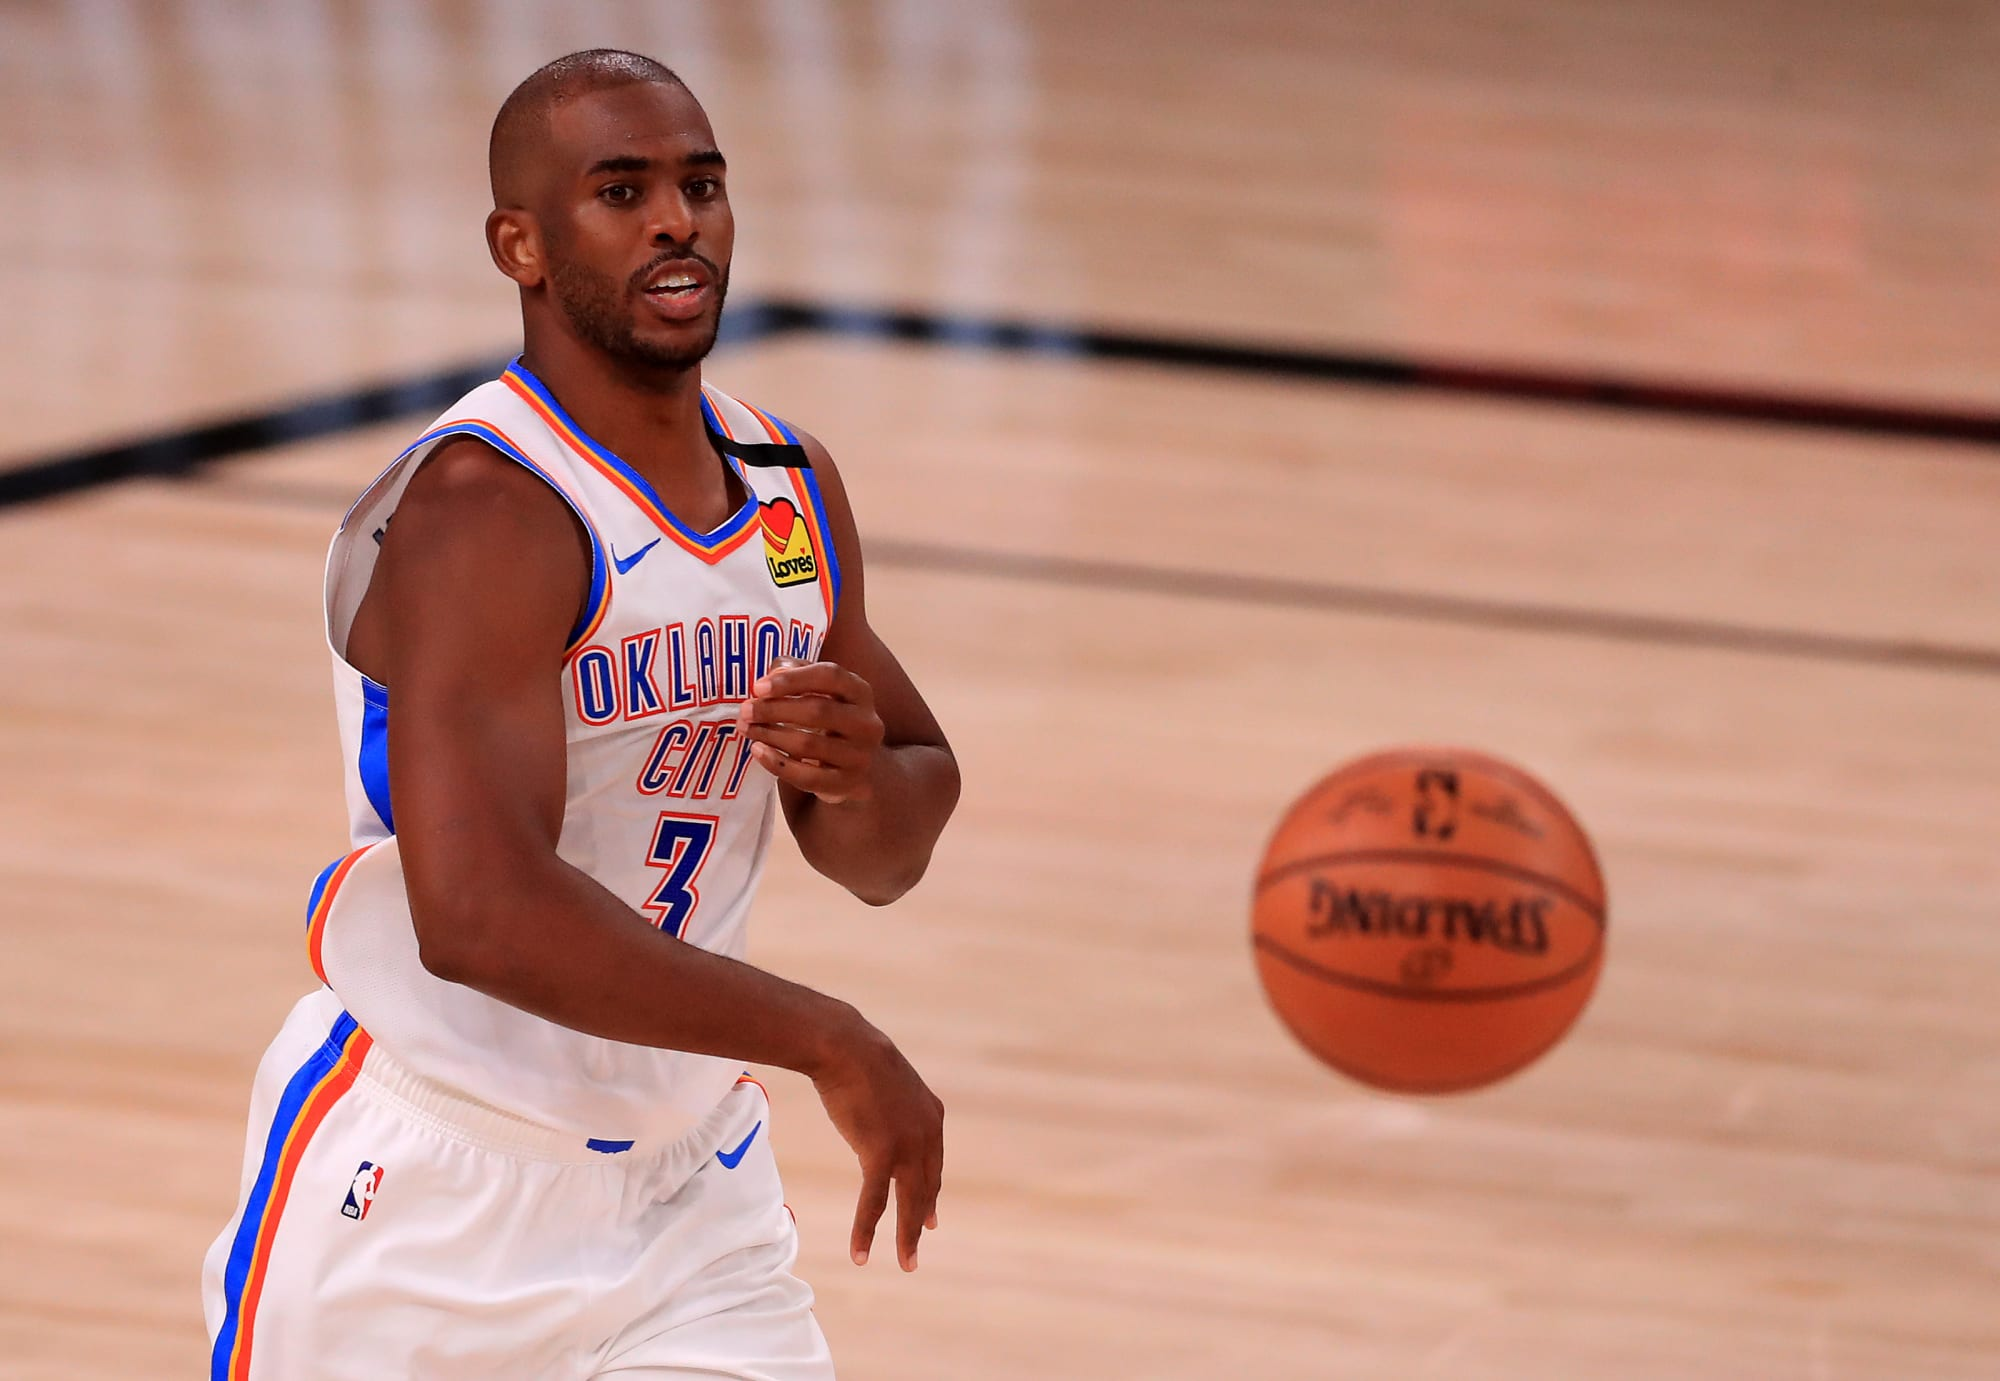 OKC Thunder: Chris Paul continues to promotes voting and HBCUs